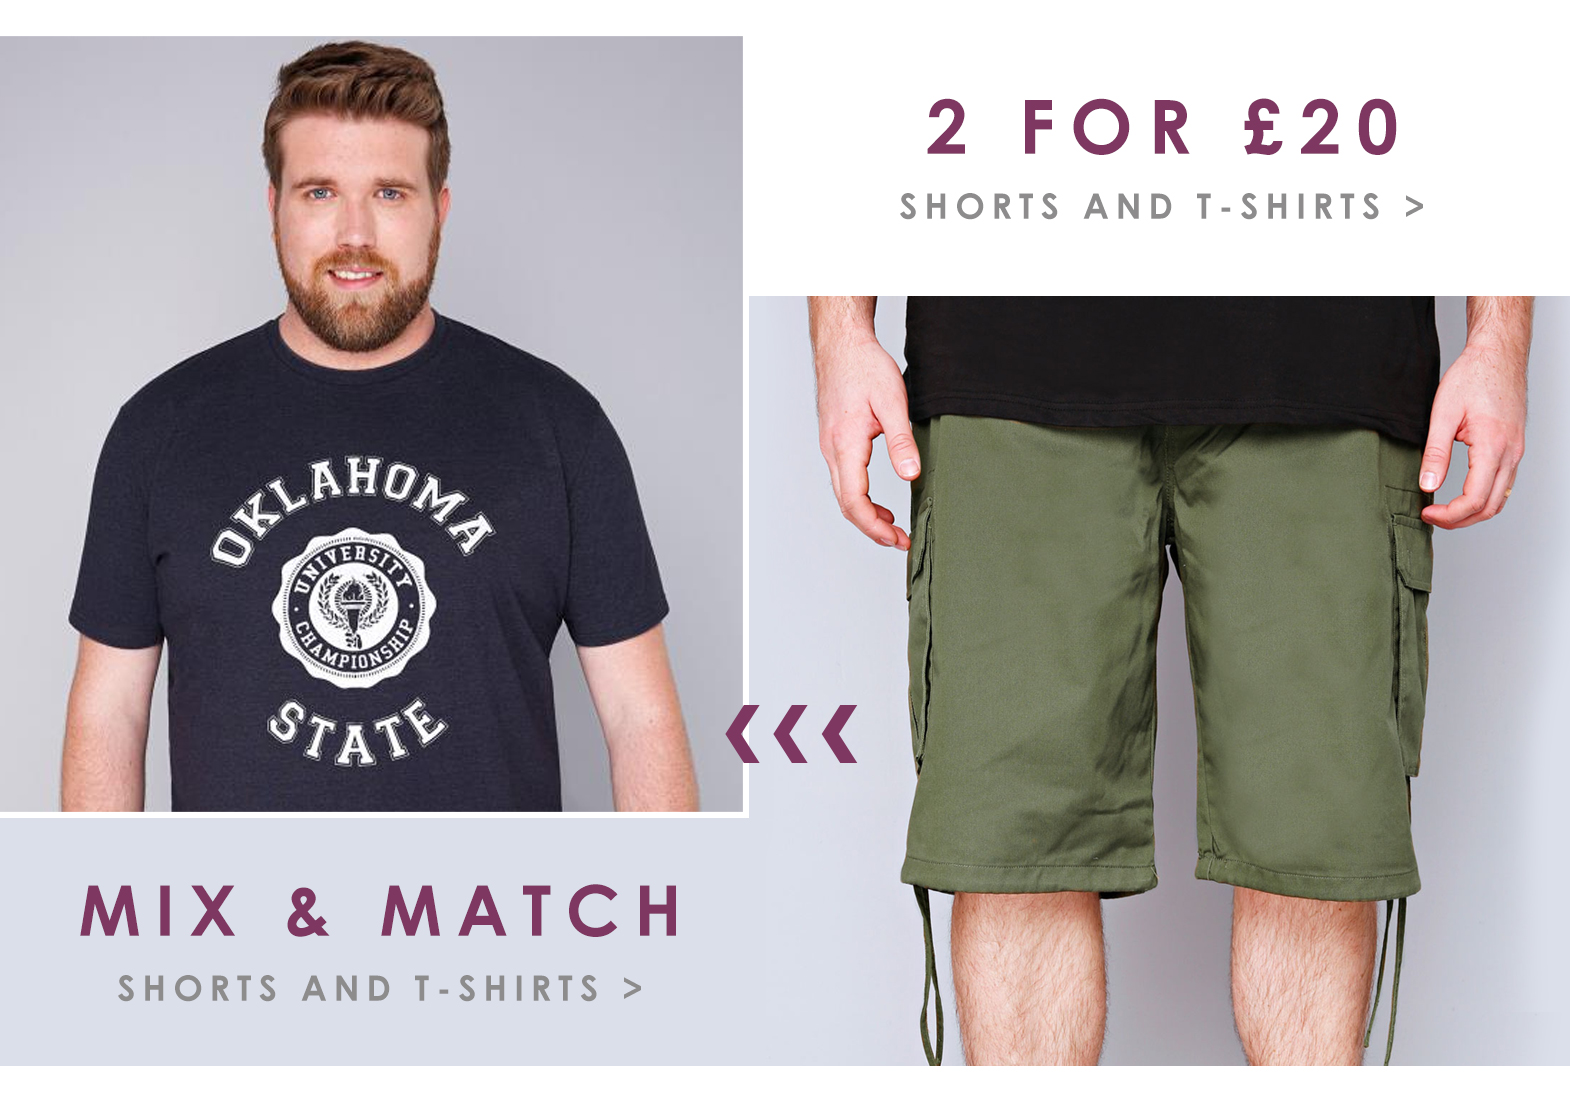 BR Offers Page - 2 for 20 shorts and t shirts